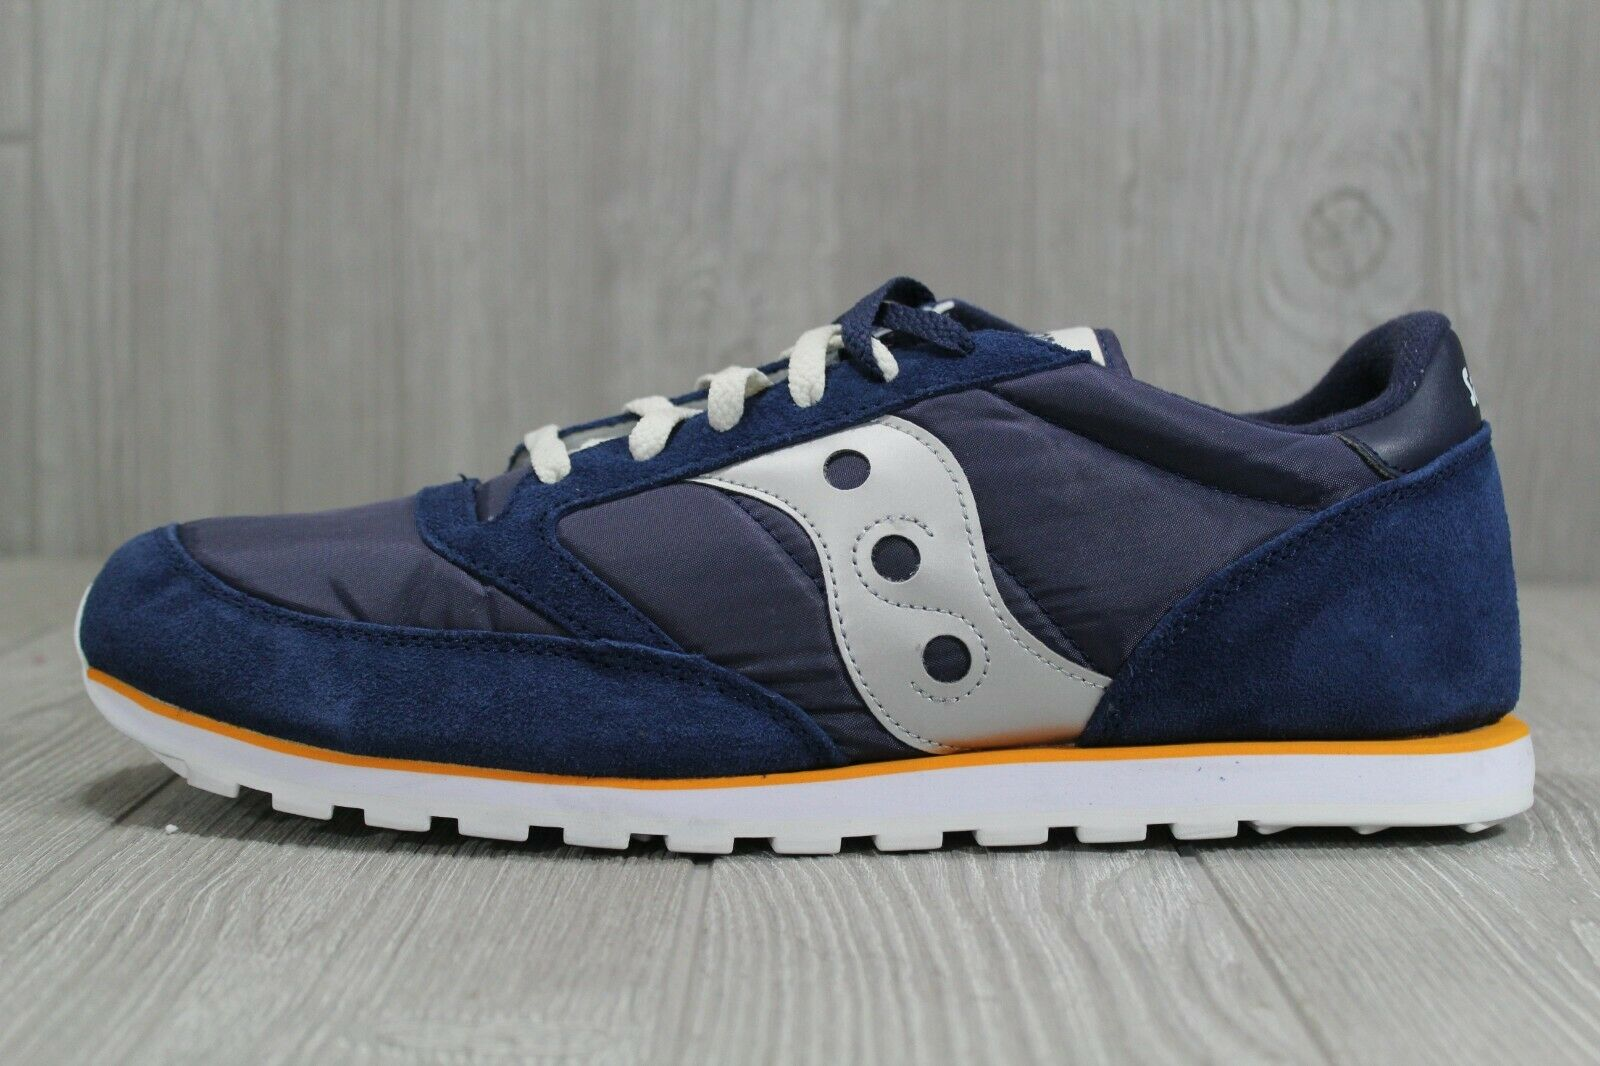 40 New Saucony Jazz Low Pro bluee Suede White Men's Running shoes Size 14